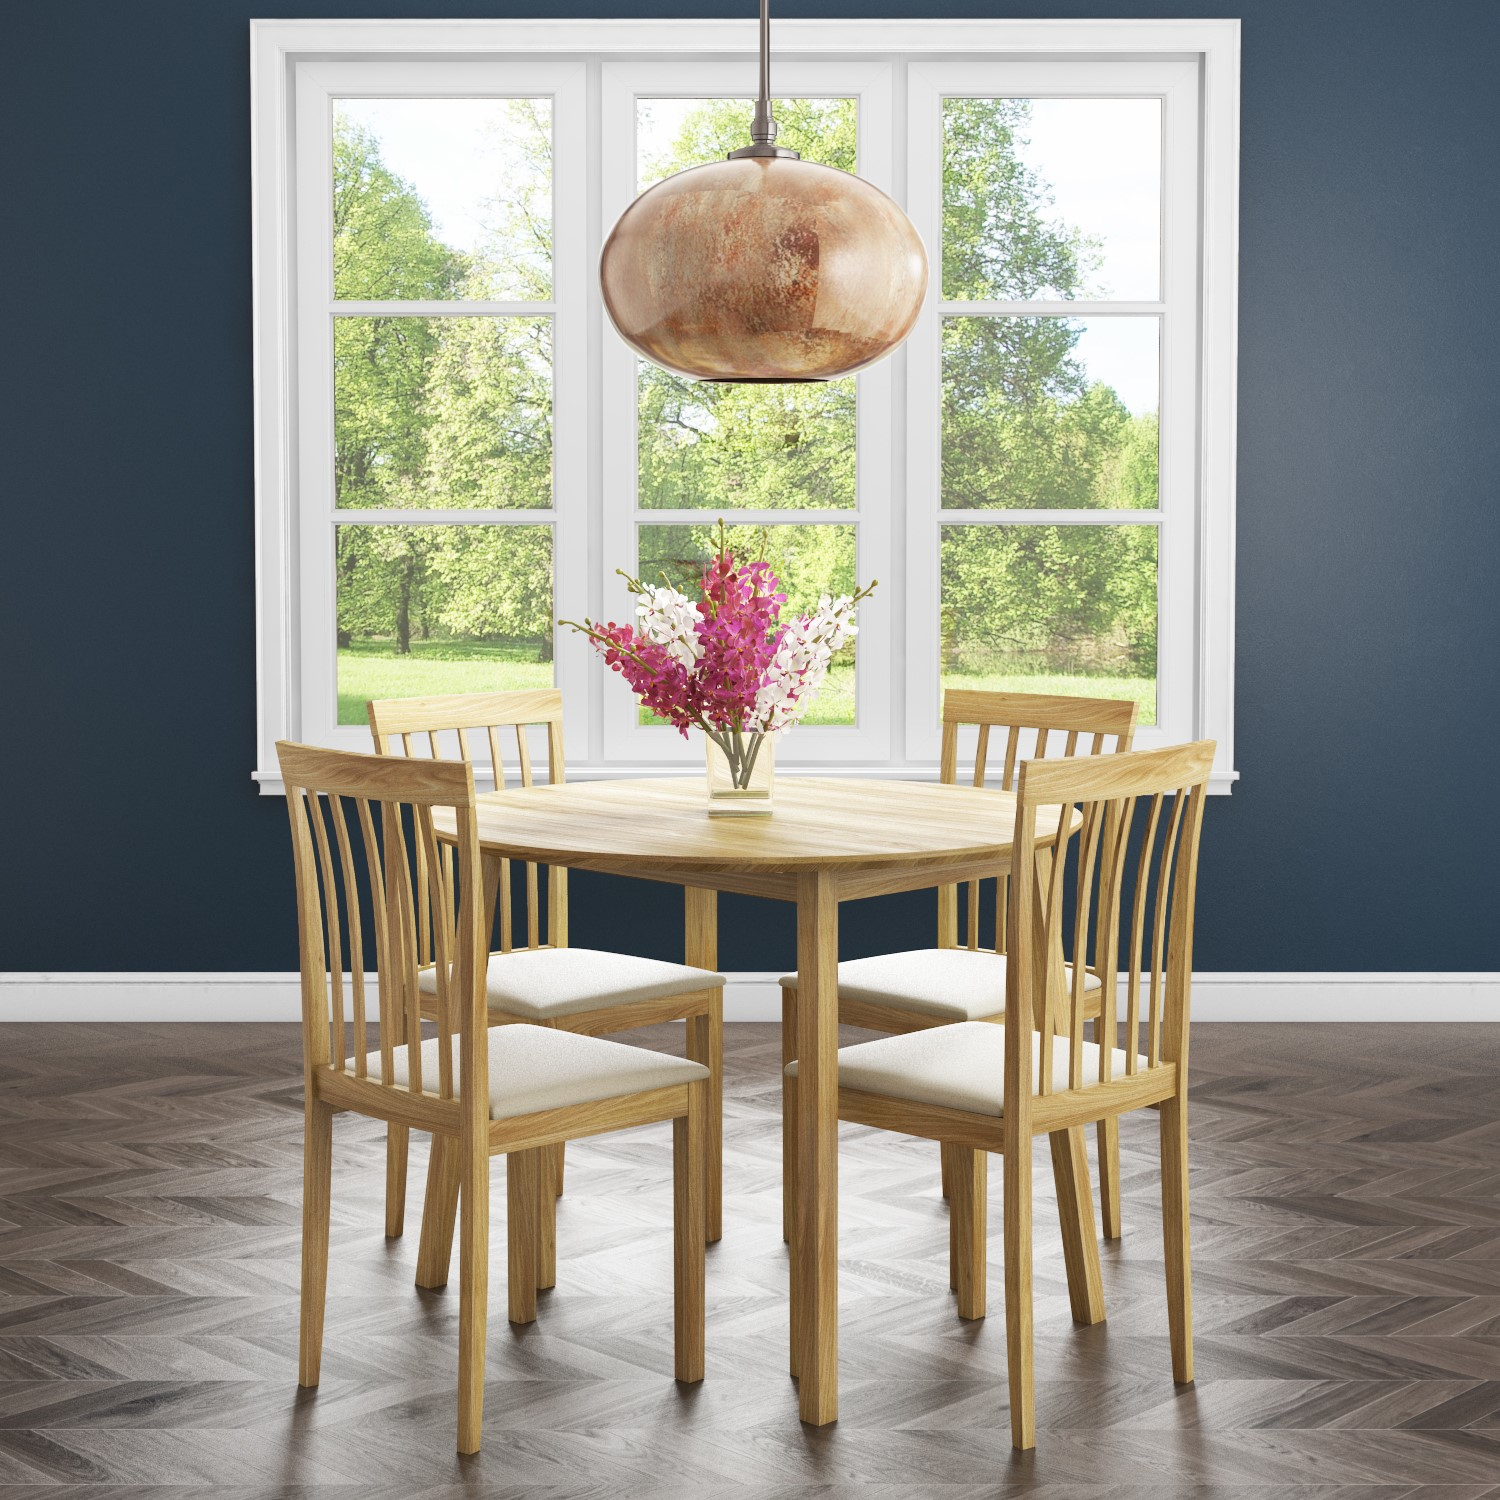 New Haven Round Drop Leaf Kitchen Dining Table With 4 Cream Fabric